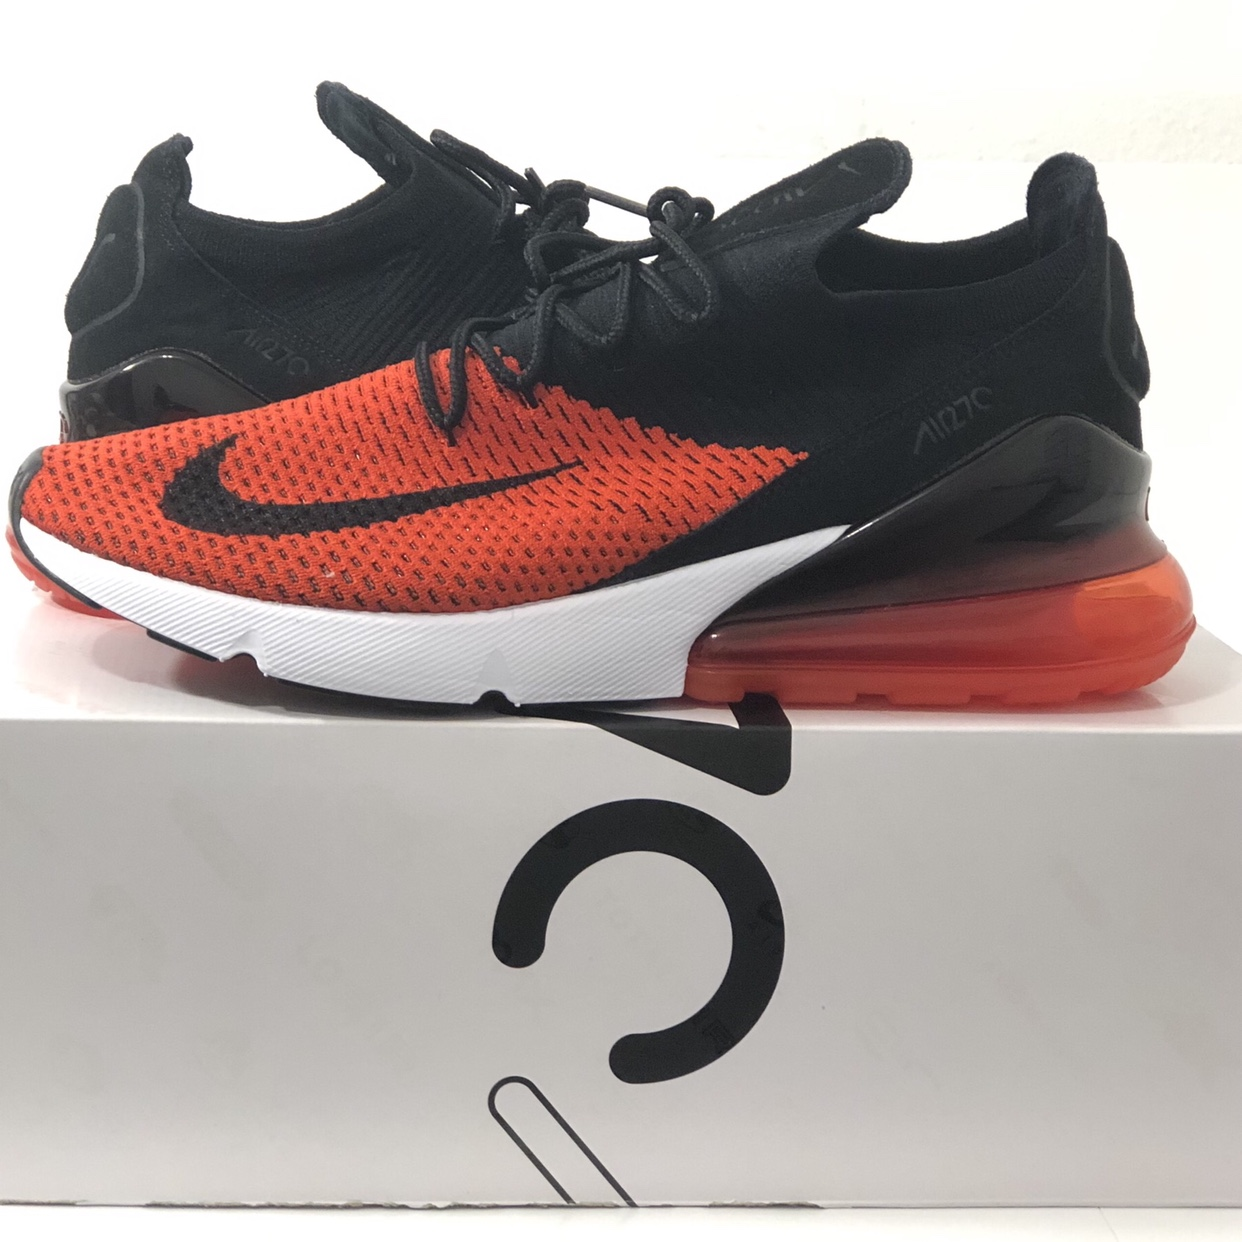 on sale 3ae59 ac914 Men's air max 270 Flyknit black/ red brand new in... - Depop